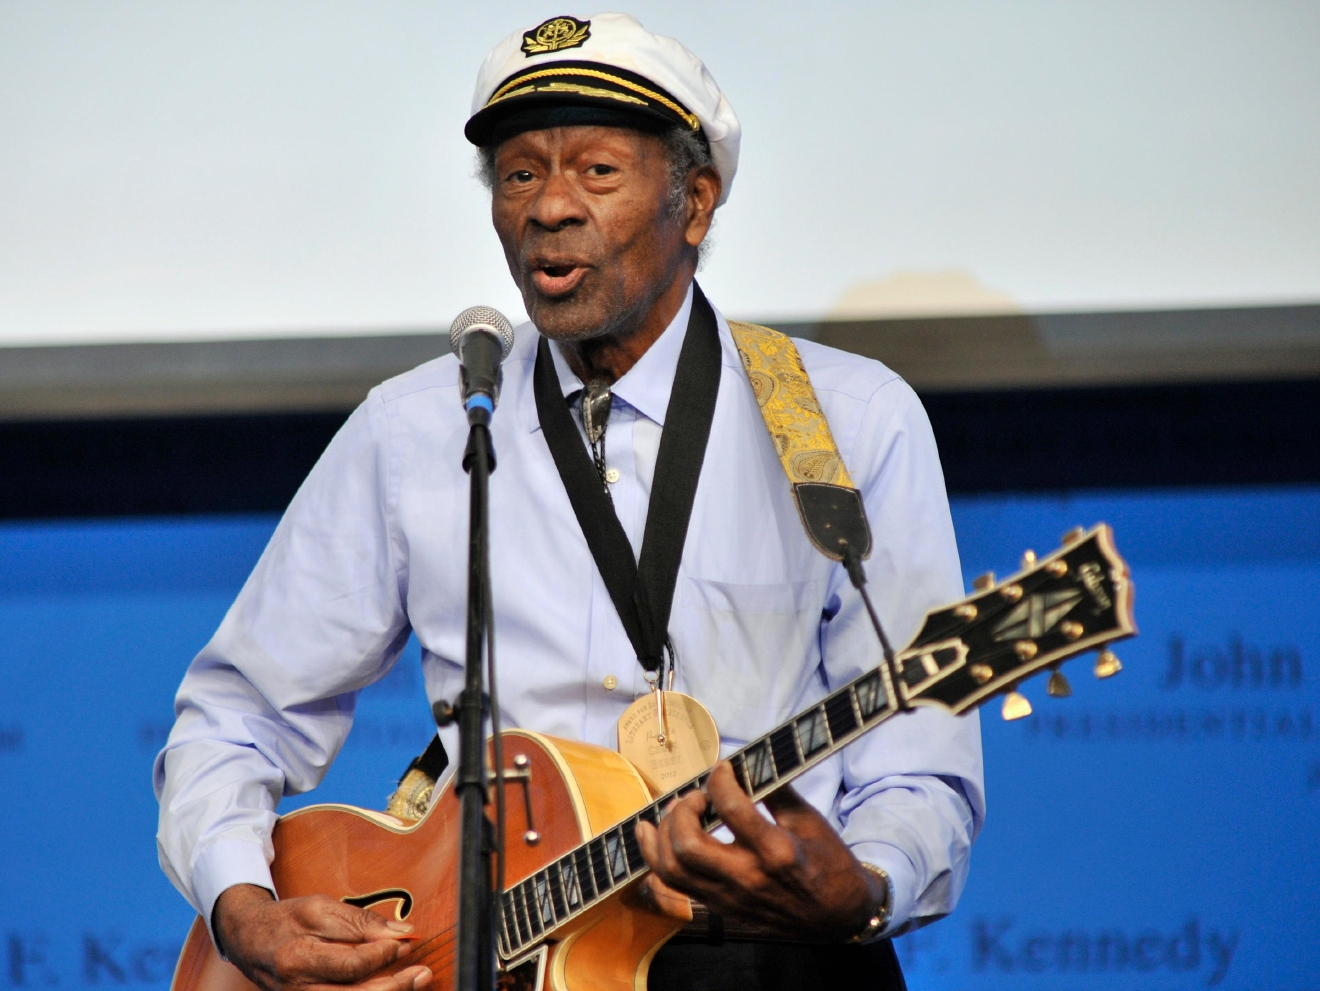 "FILE - In this Feb. 26, 2012 file photo, rock 'n' roll legend Chuck Berry performs ""Johnny B. Goode"" at the John F. Kennedy Presidential Library and Museum in Boston. Berry is set to release his first new studio album in more than 35 years. The album, titled ""Chuck,"" will be available in 2017. (AP Photo/Josh Reynolds, File)"